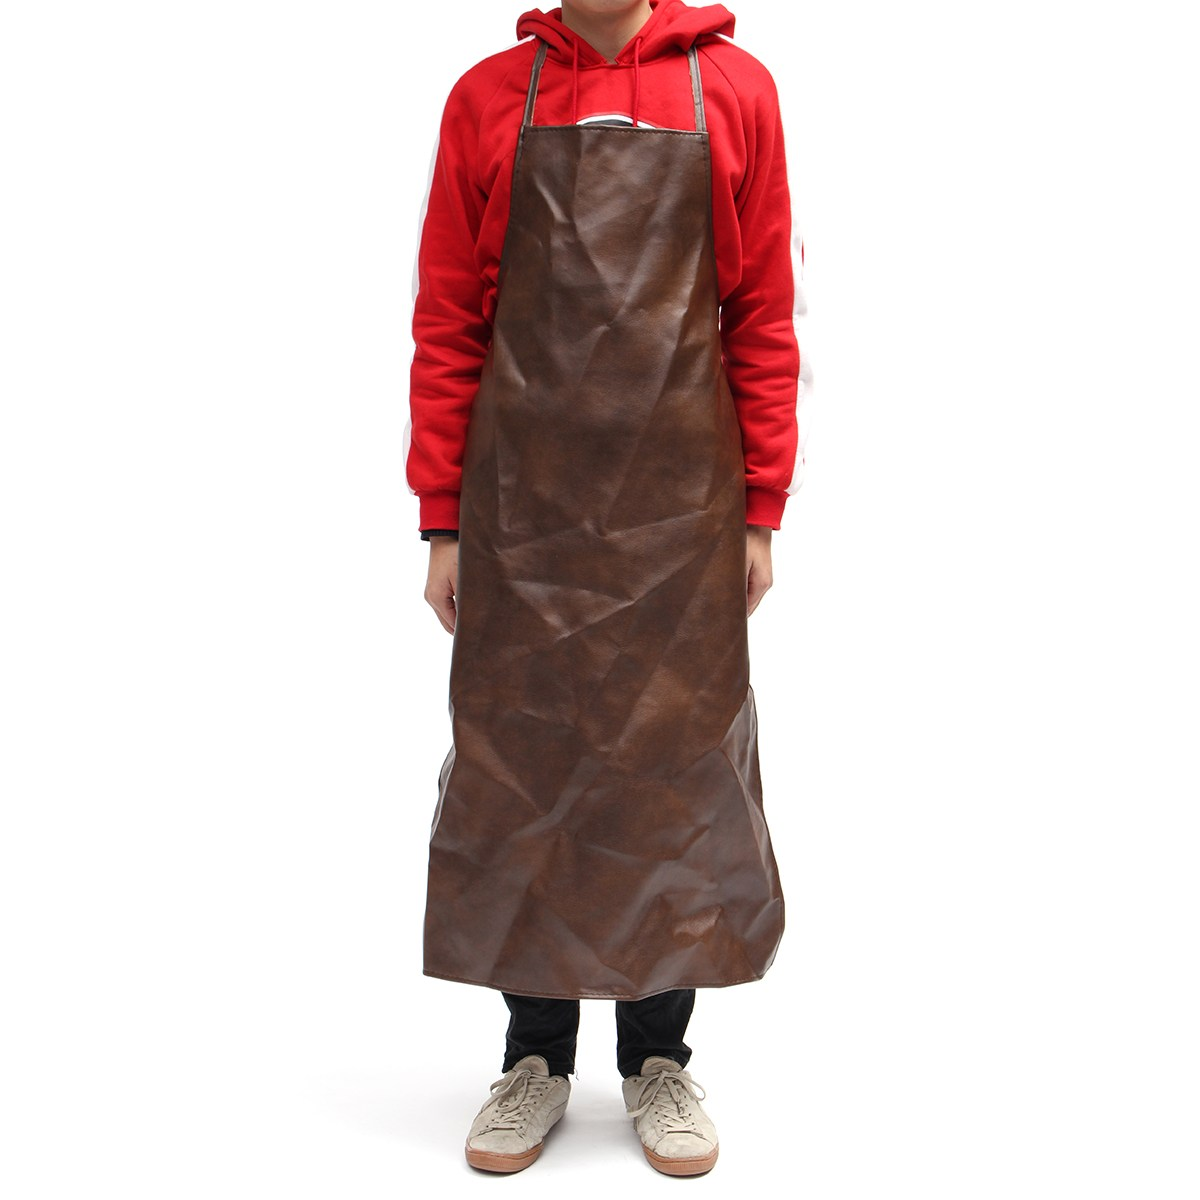 NEW Safurance Leather Equipment Apron Waterproof Washable Heat Insulation Kitchen Workplace Safety Clothing new safurance welders dual leather